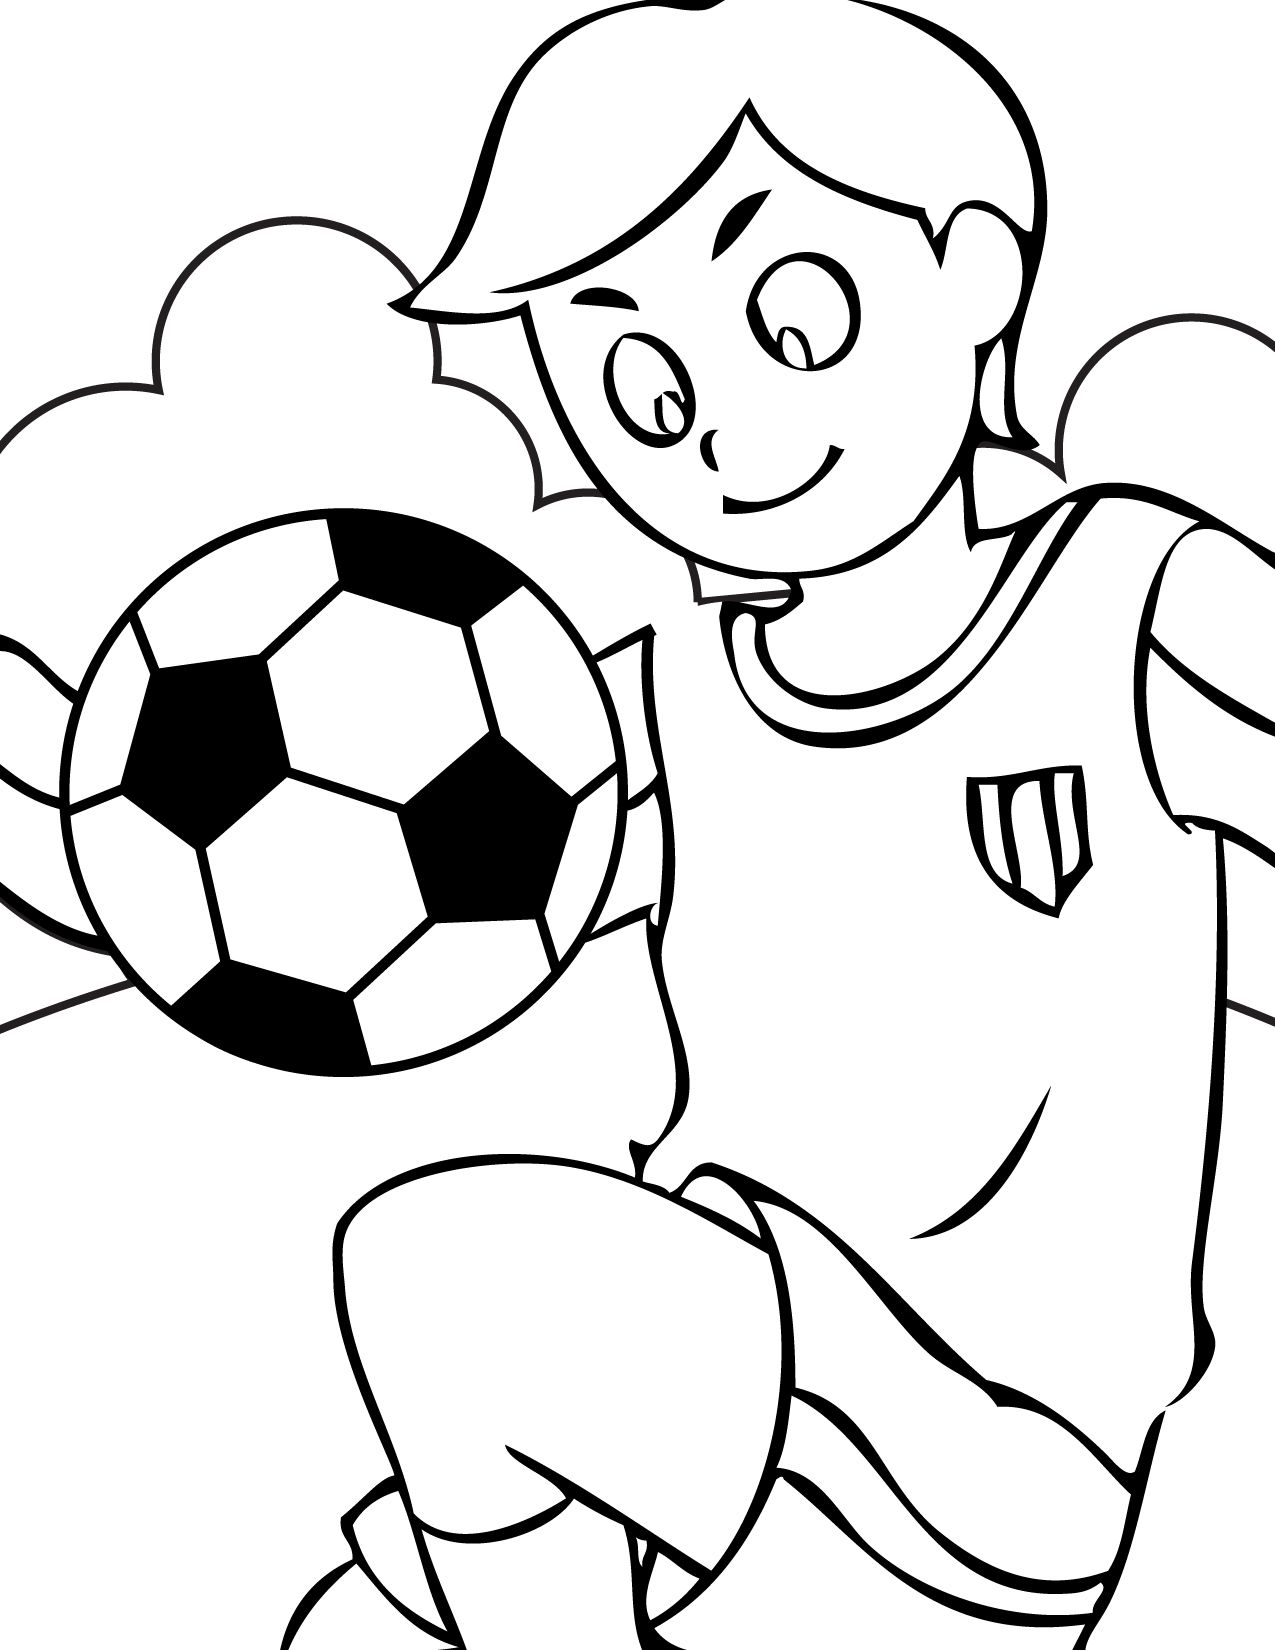 Ausmalbilder Kinder Fussball : Free Printable Sports Coloring Pages For Kids Sports Pinterest